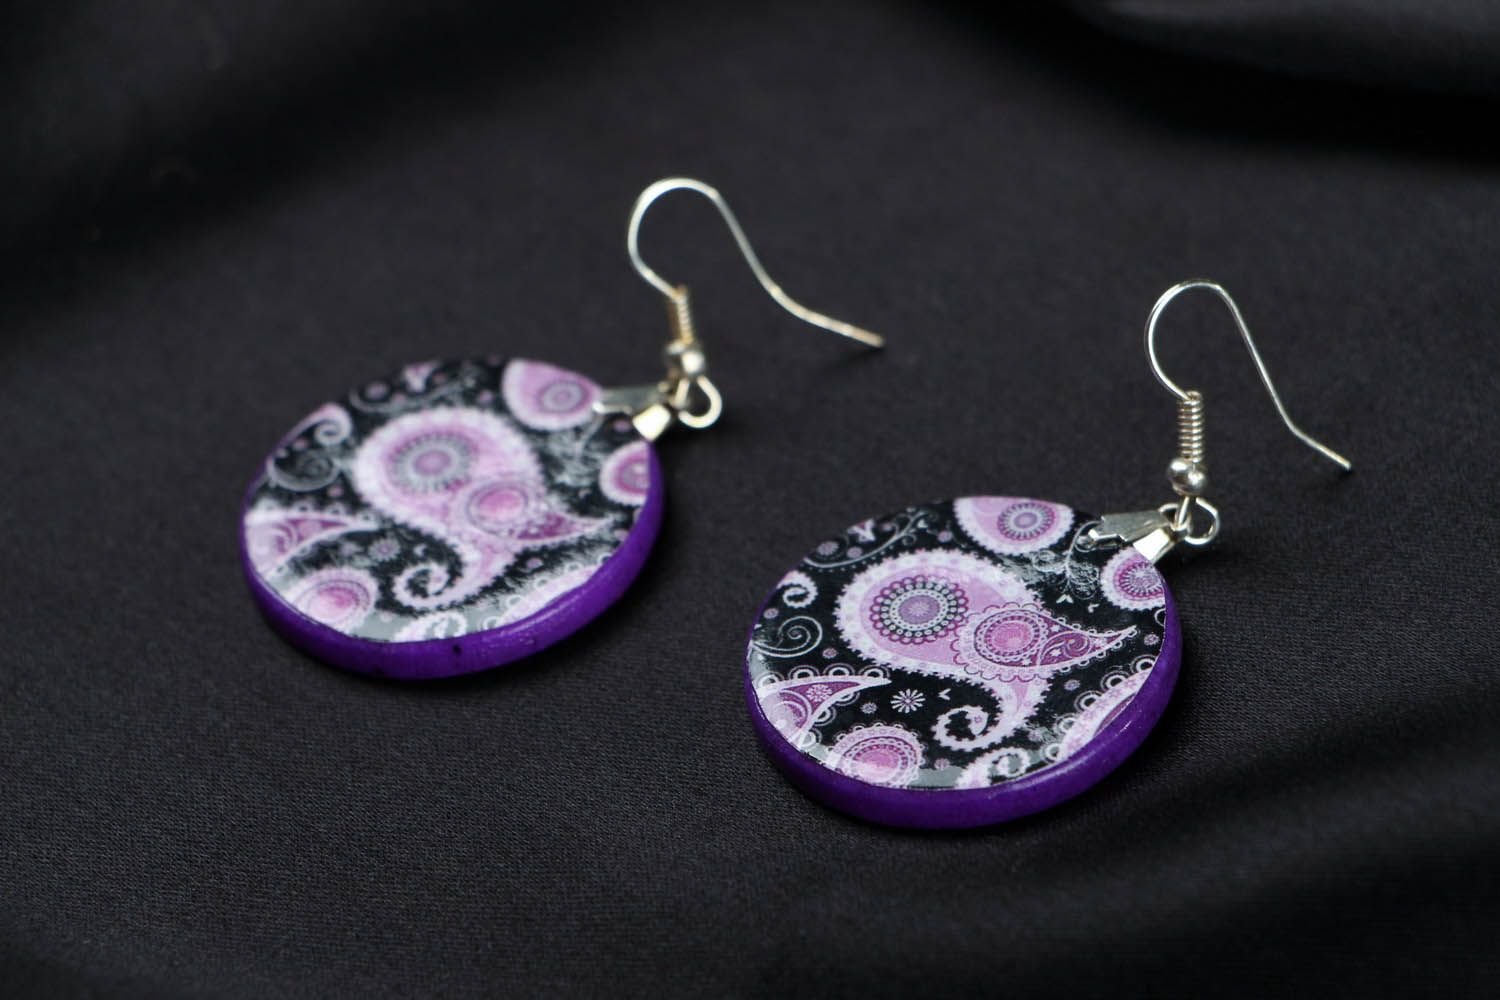 polymer clay earrings Polymer clay earrings - MADEheart.com